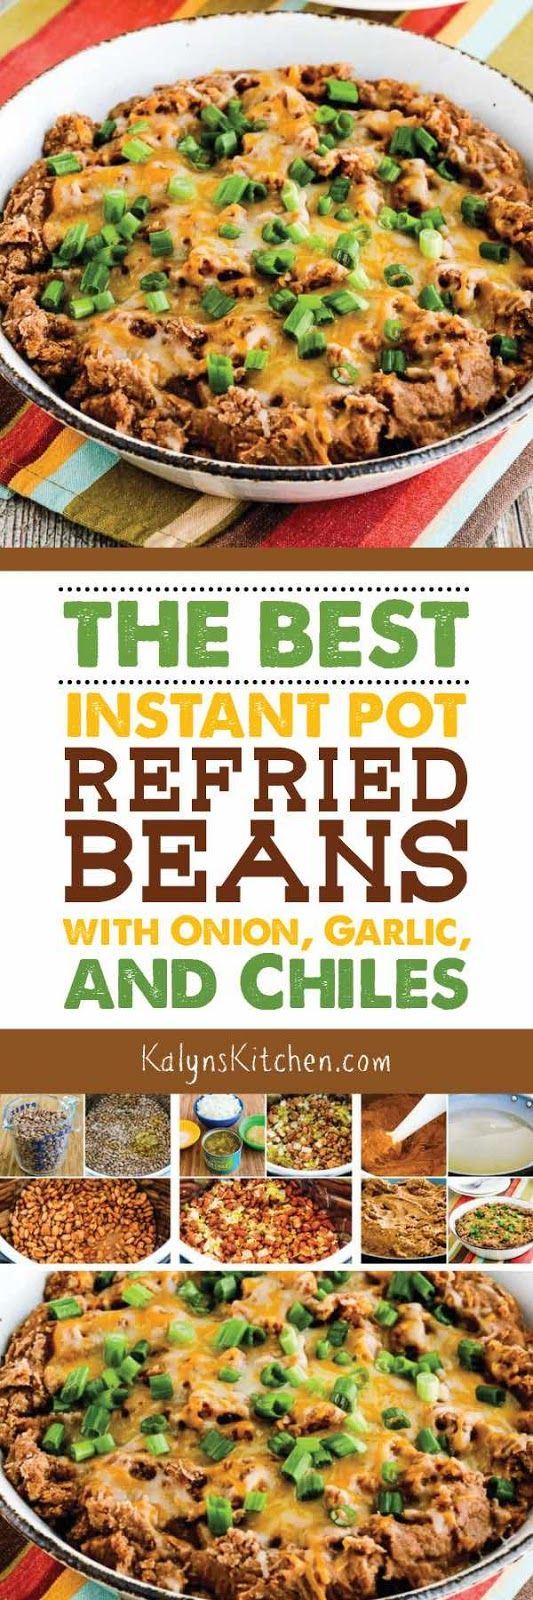 The seasonings I use really do make these The BEST Instant Pot Refried Beans (with Onion, Garlic, and Chiles). And these tasty beans are low-glycemic, gluten-free, meatless, and South Beach Diet friendly. [found on KalynsKitchen.com]